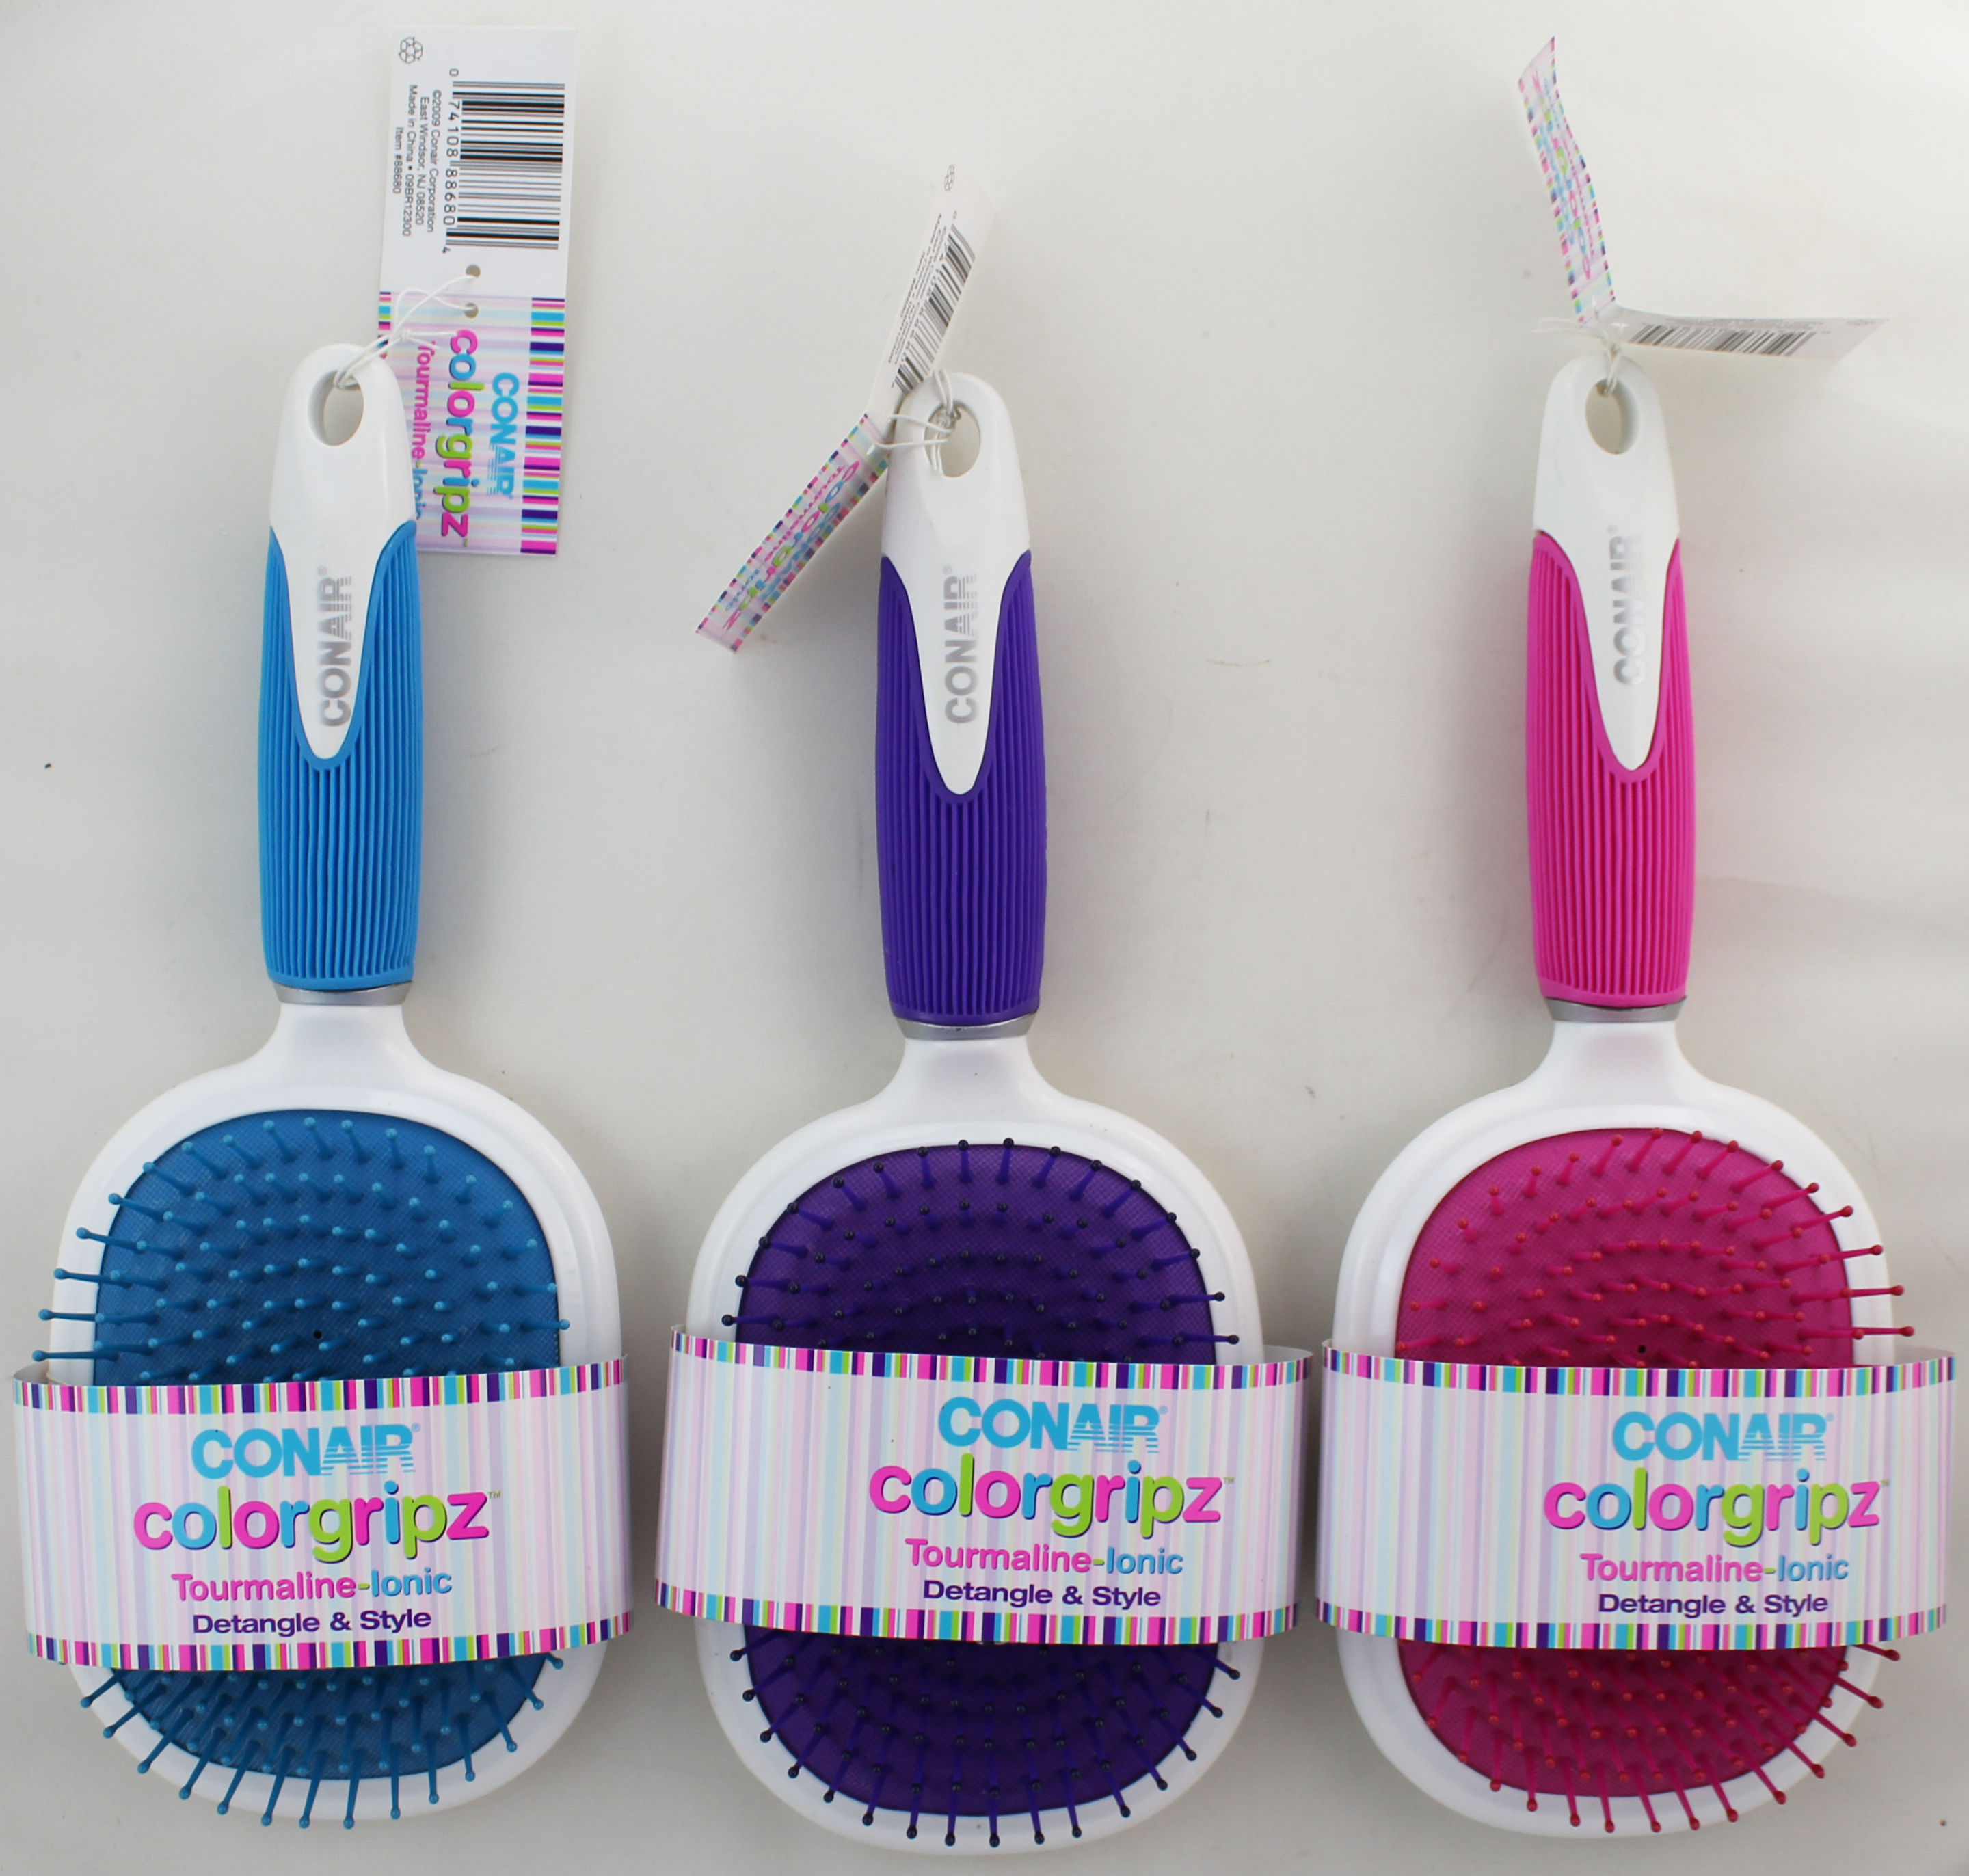 Conair ColorGripz Paddle Brush